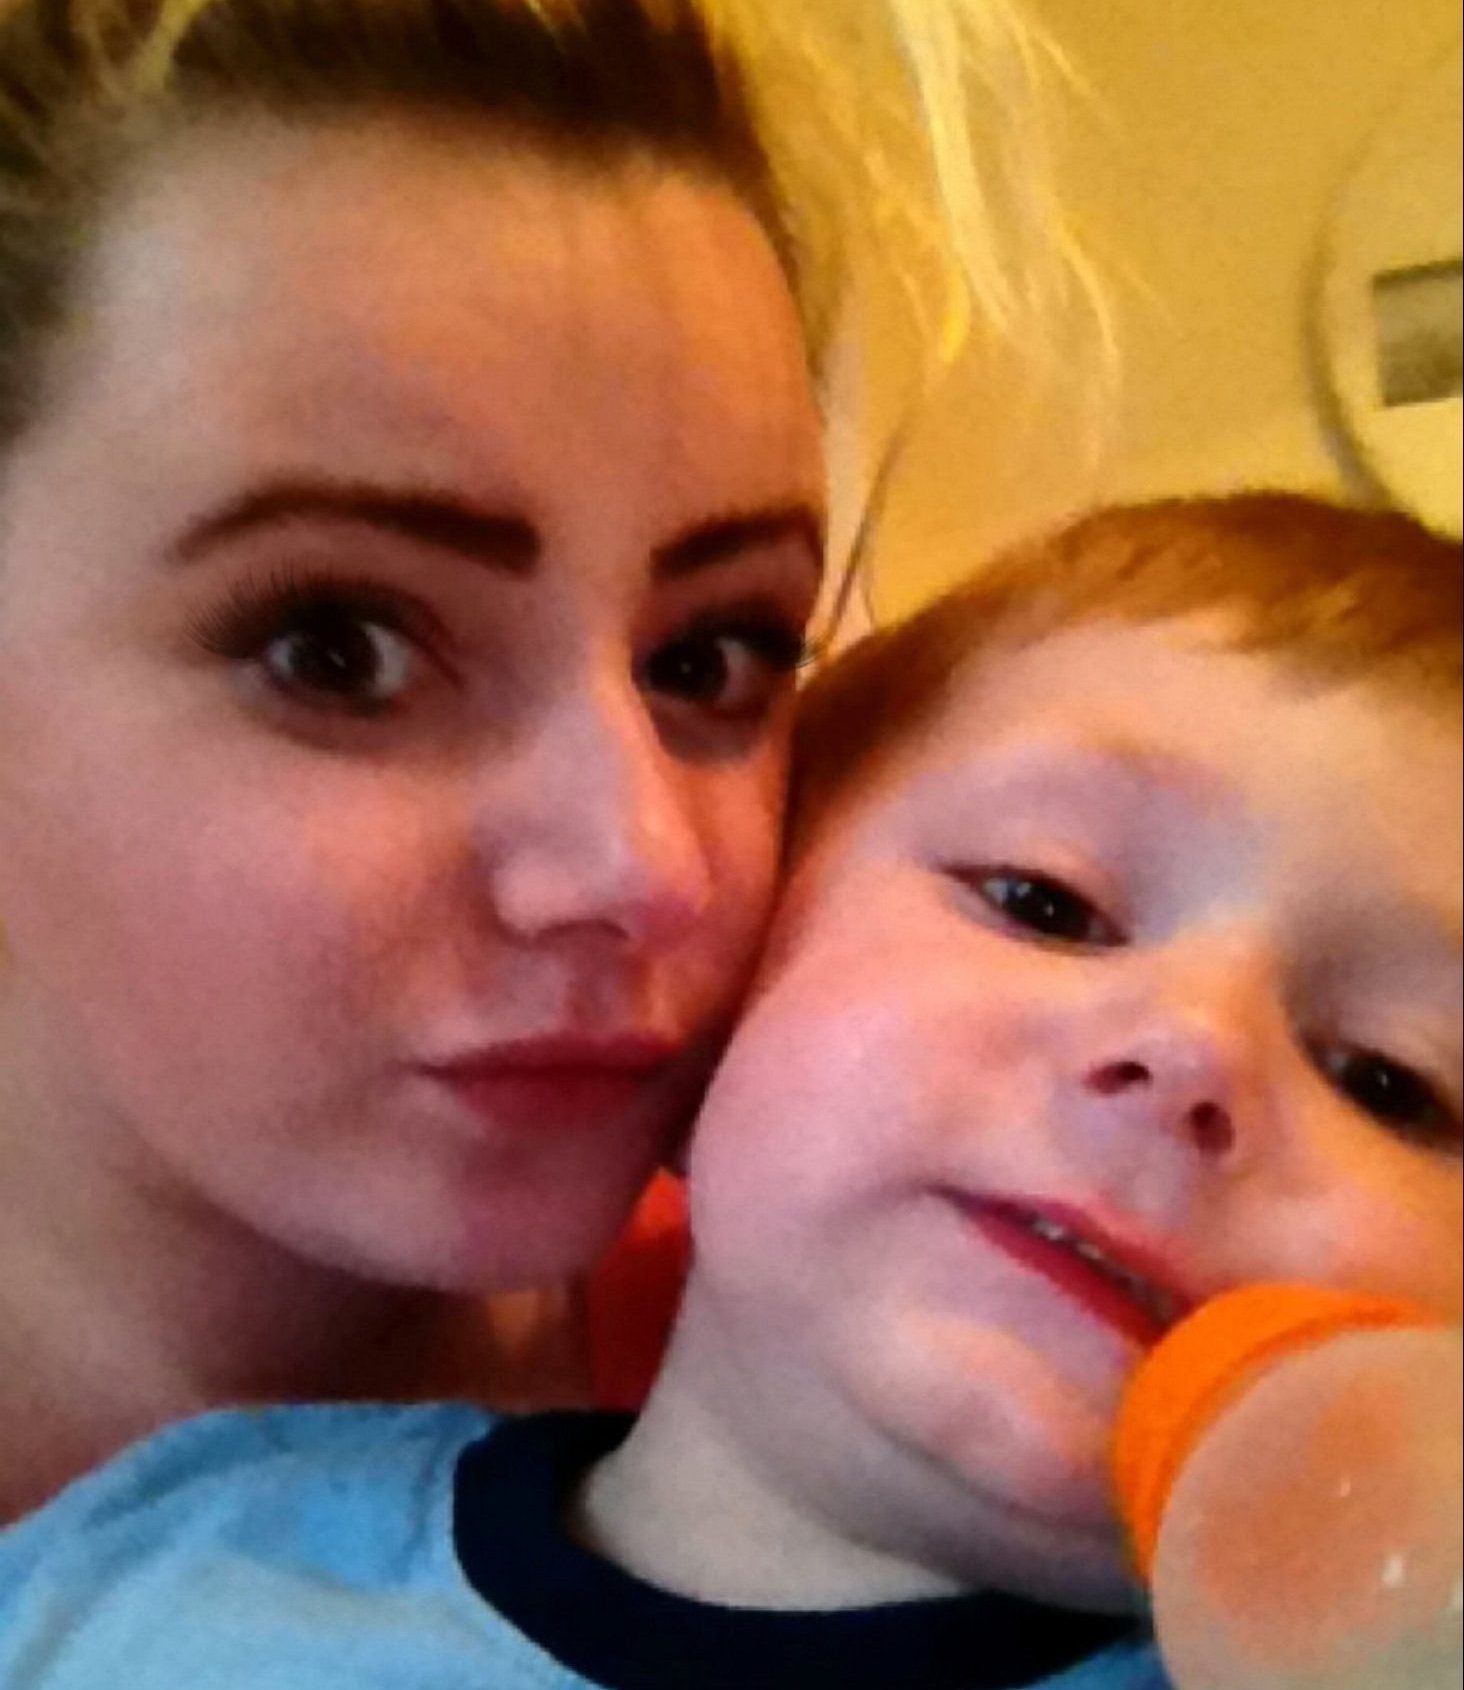 Sophie Brown with her son Riley Apps. See Ross Parry story RPYEGG; A mother has told of her horror after her son opened a chocolate egg expecting to find a toy inside - but discovered six TABLETS. Little Riley Apps, two, had enjoyed the Minions-themed treat and was struggling to open the plastic container which usually contains a toy, so took it to his mum Sophie Brown, 22. But she was horrified when she found four colourful capsules and two white tablets marked with 'MDZ' - suspected to be palliative care sedatives.